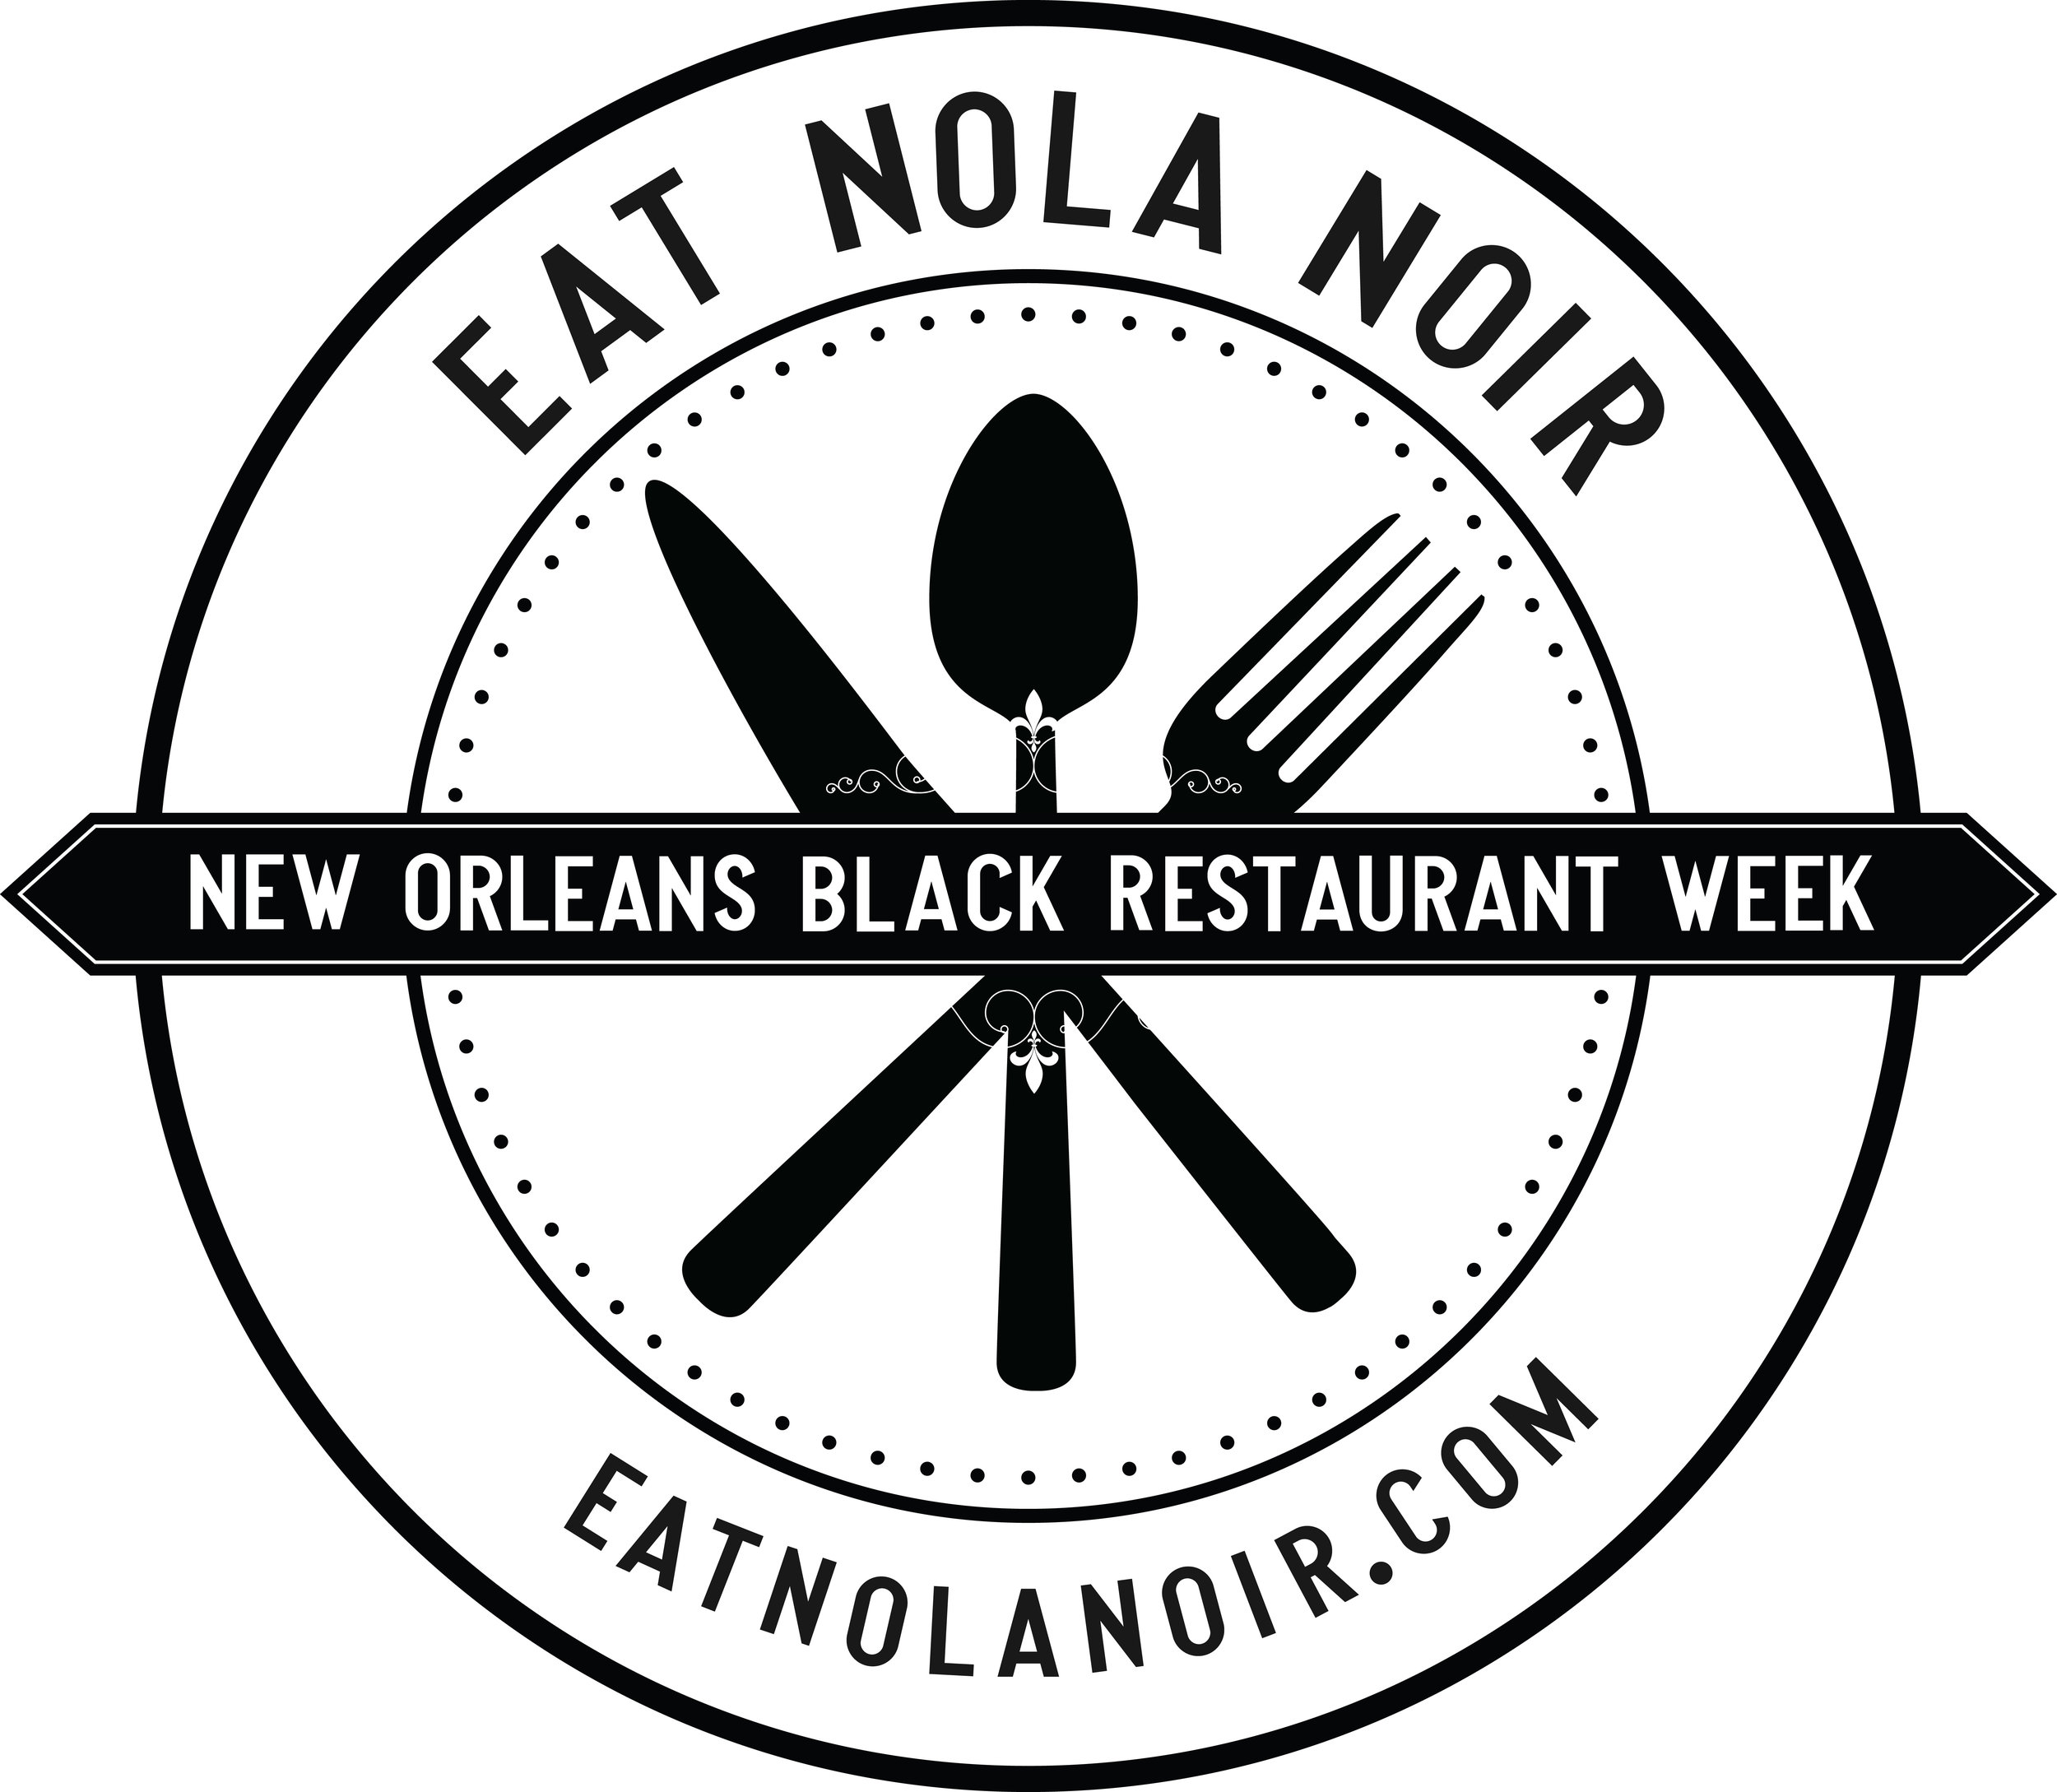 Purchase Official Eat NOLA Noir Gear